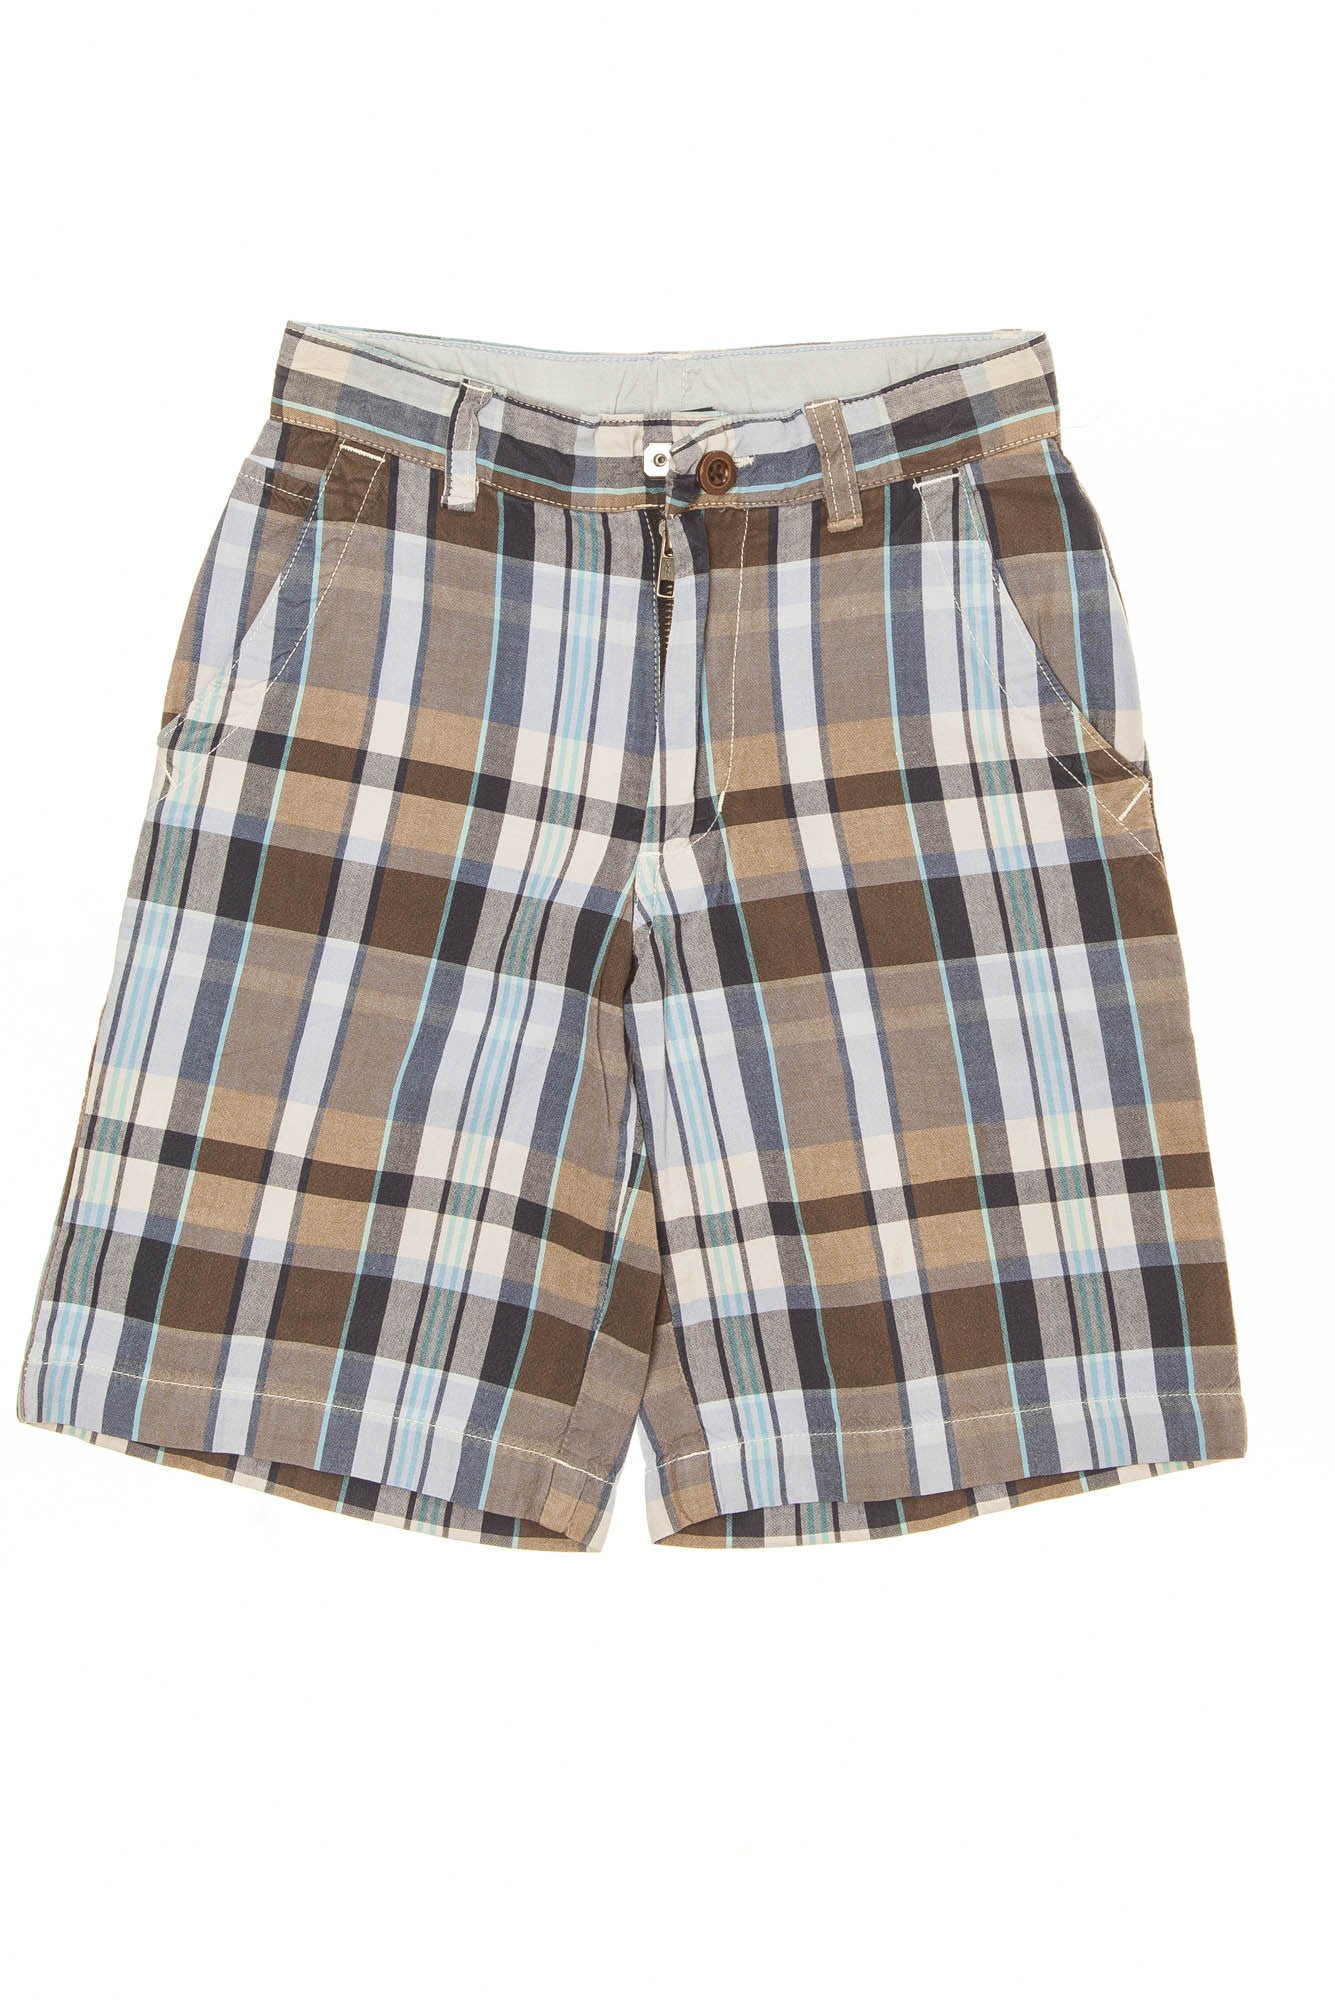 390f929145 GapKids - Light Brown and Blue Plaid Shorts - 8 Slim – LUXHAVE